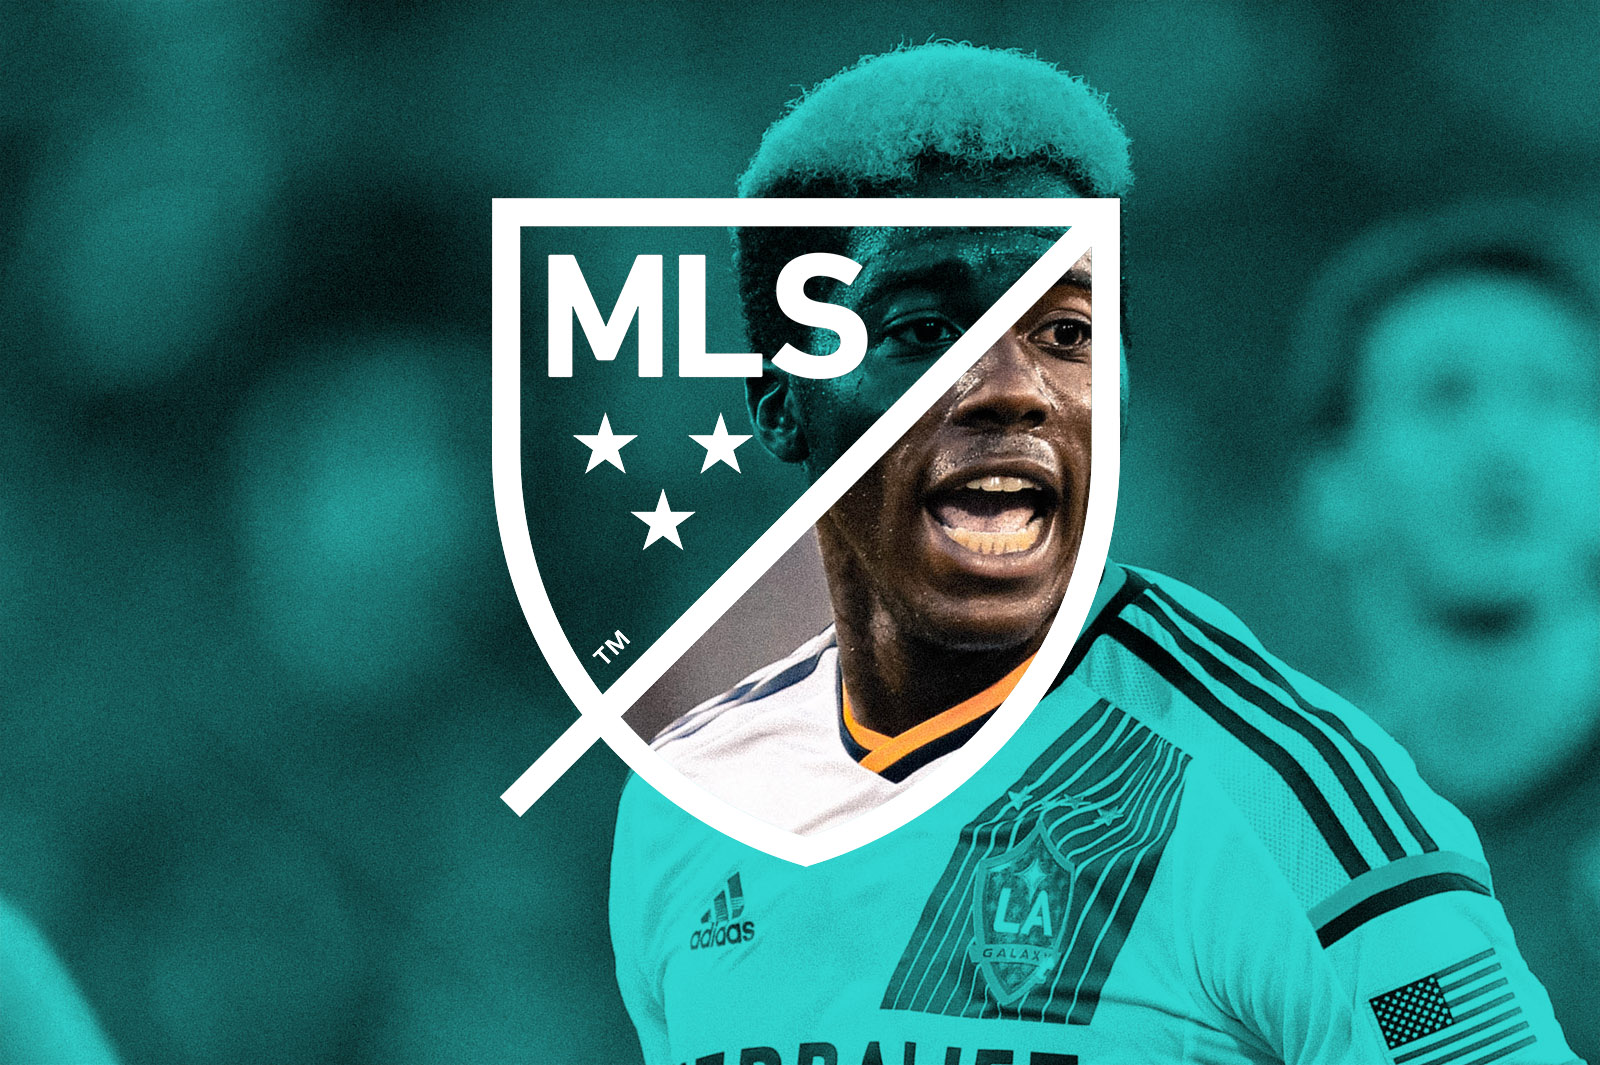 MLS_WINDOW_LOGO_2.jpg